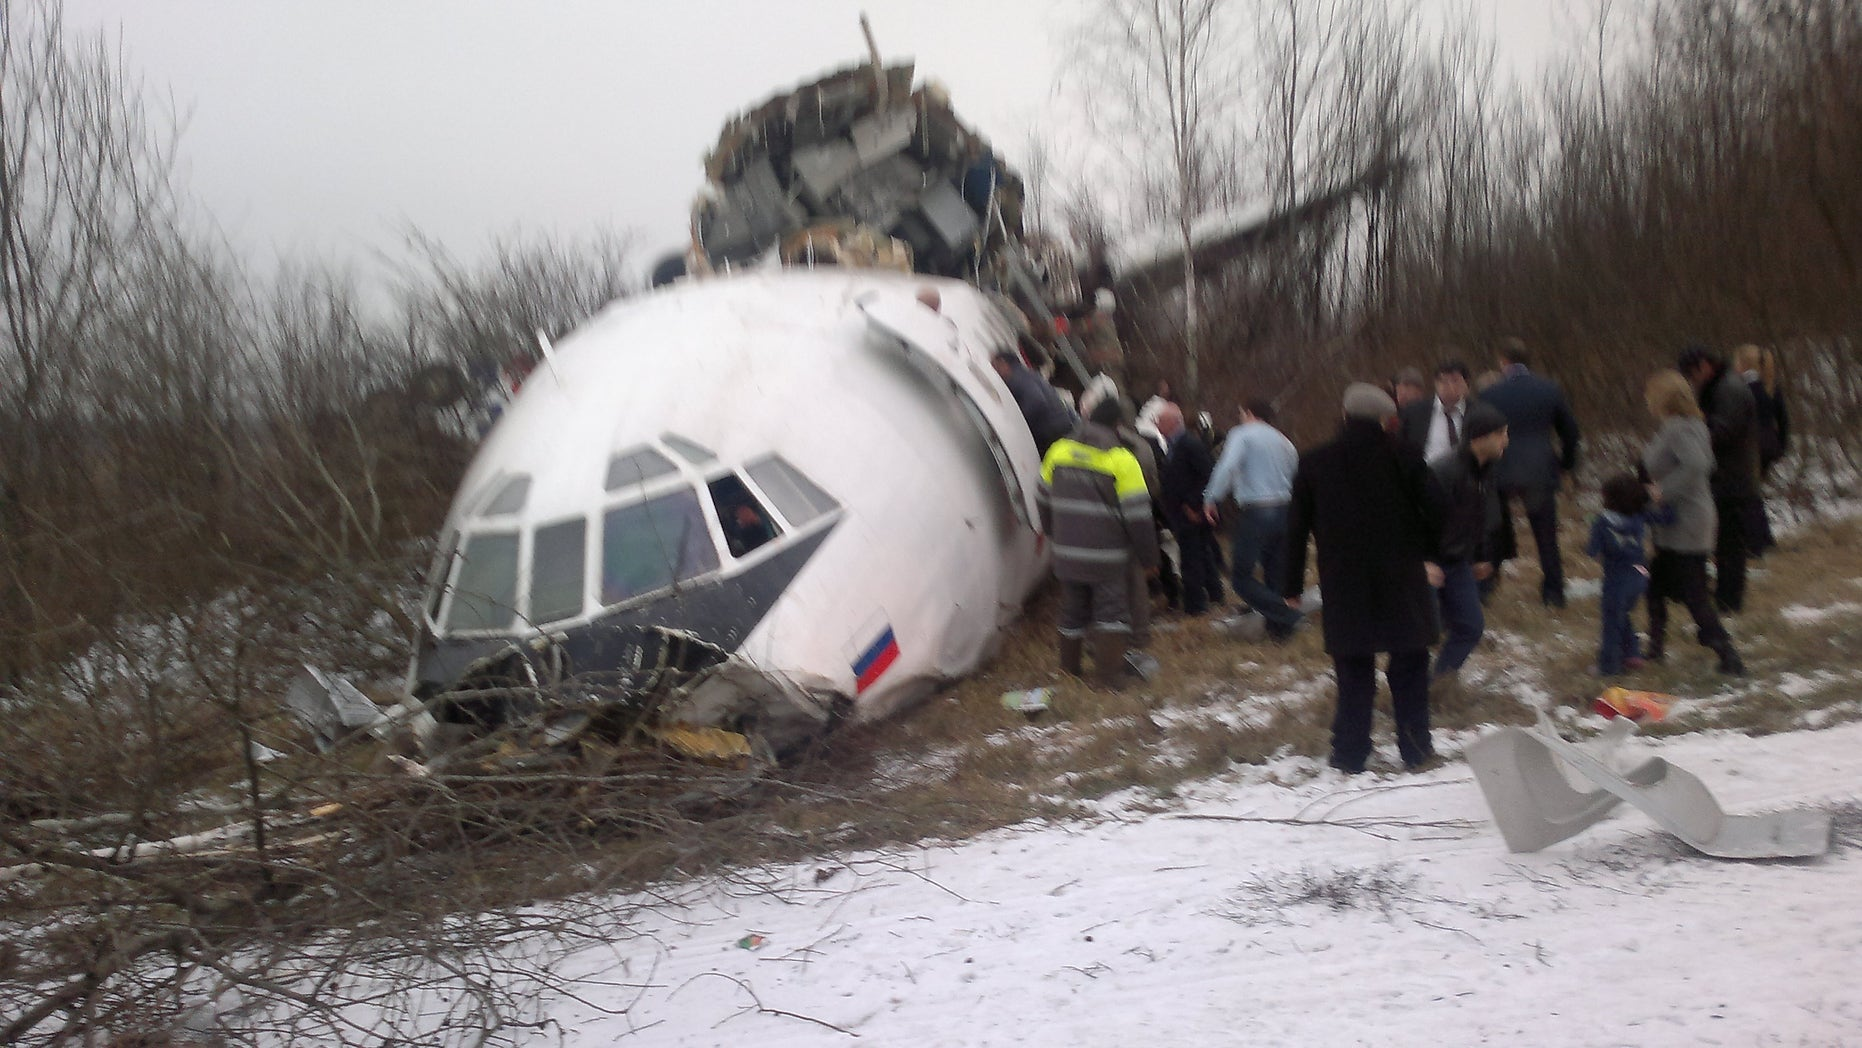 In this photo taken on a cell phone by an eyewitness, showing a Tupolev Tu-154 passenger jet belonging to Dagestan Airlines is seen after an emergency landing on Saturday, Dec. 4, 2010, at Moscow Domodedovo aiport. The passenger jet with 155 people aboard skidded off the runway during an emergency landing at the Moscow airport on Saturday, killing two people and injuring some dozens of others, Russian officials said, after all of its three engines failed.